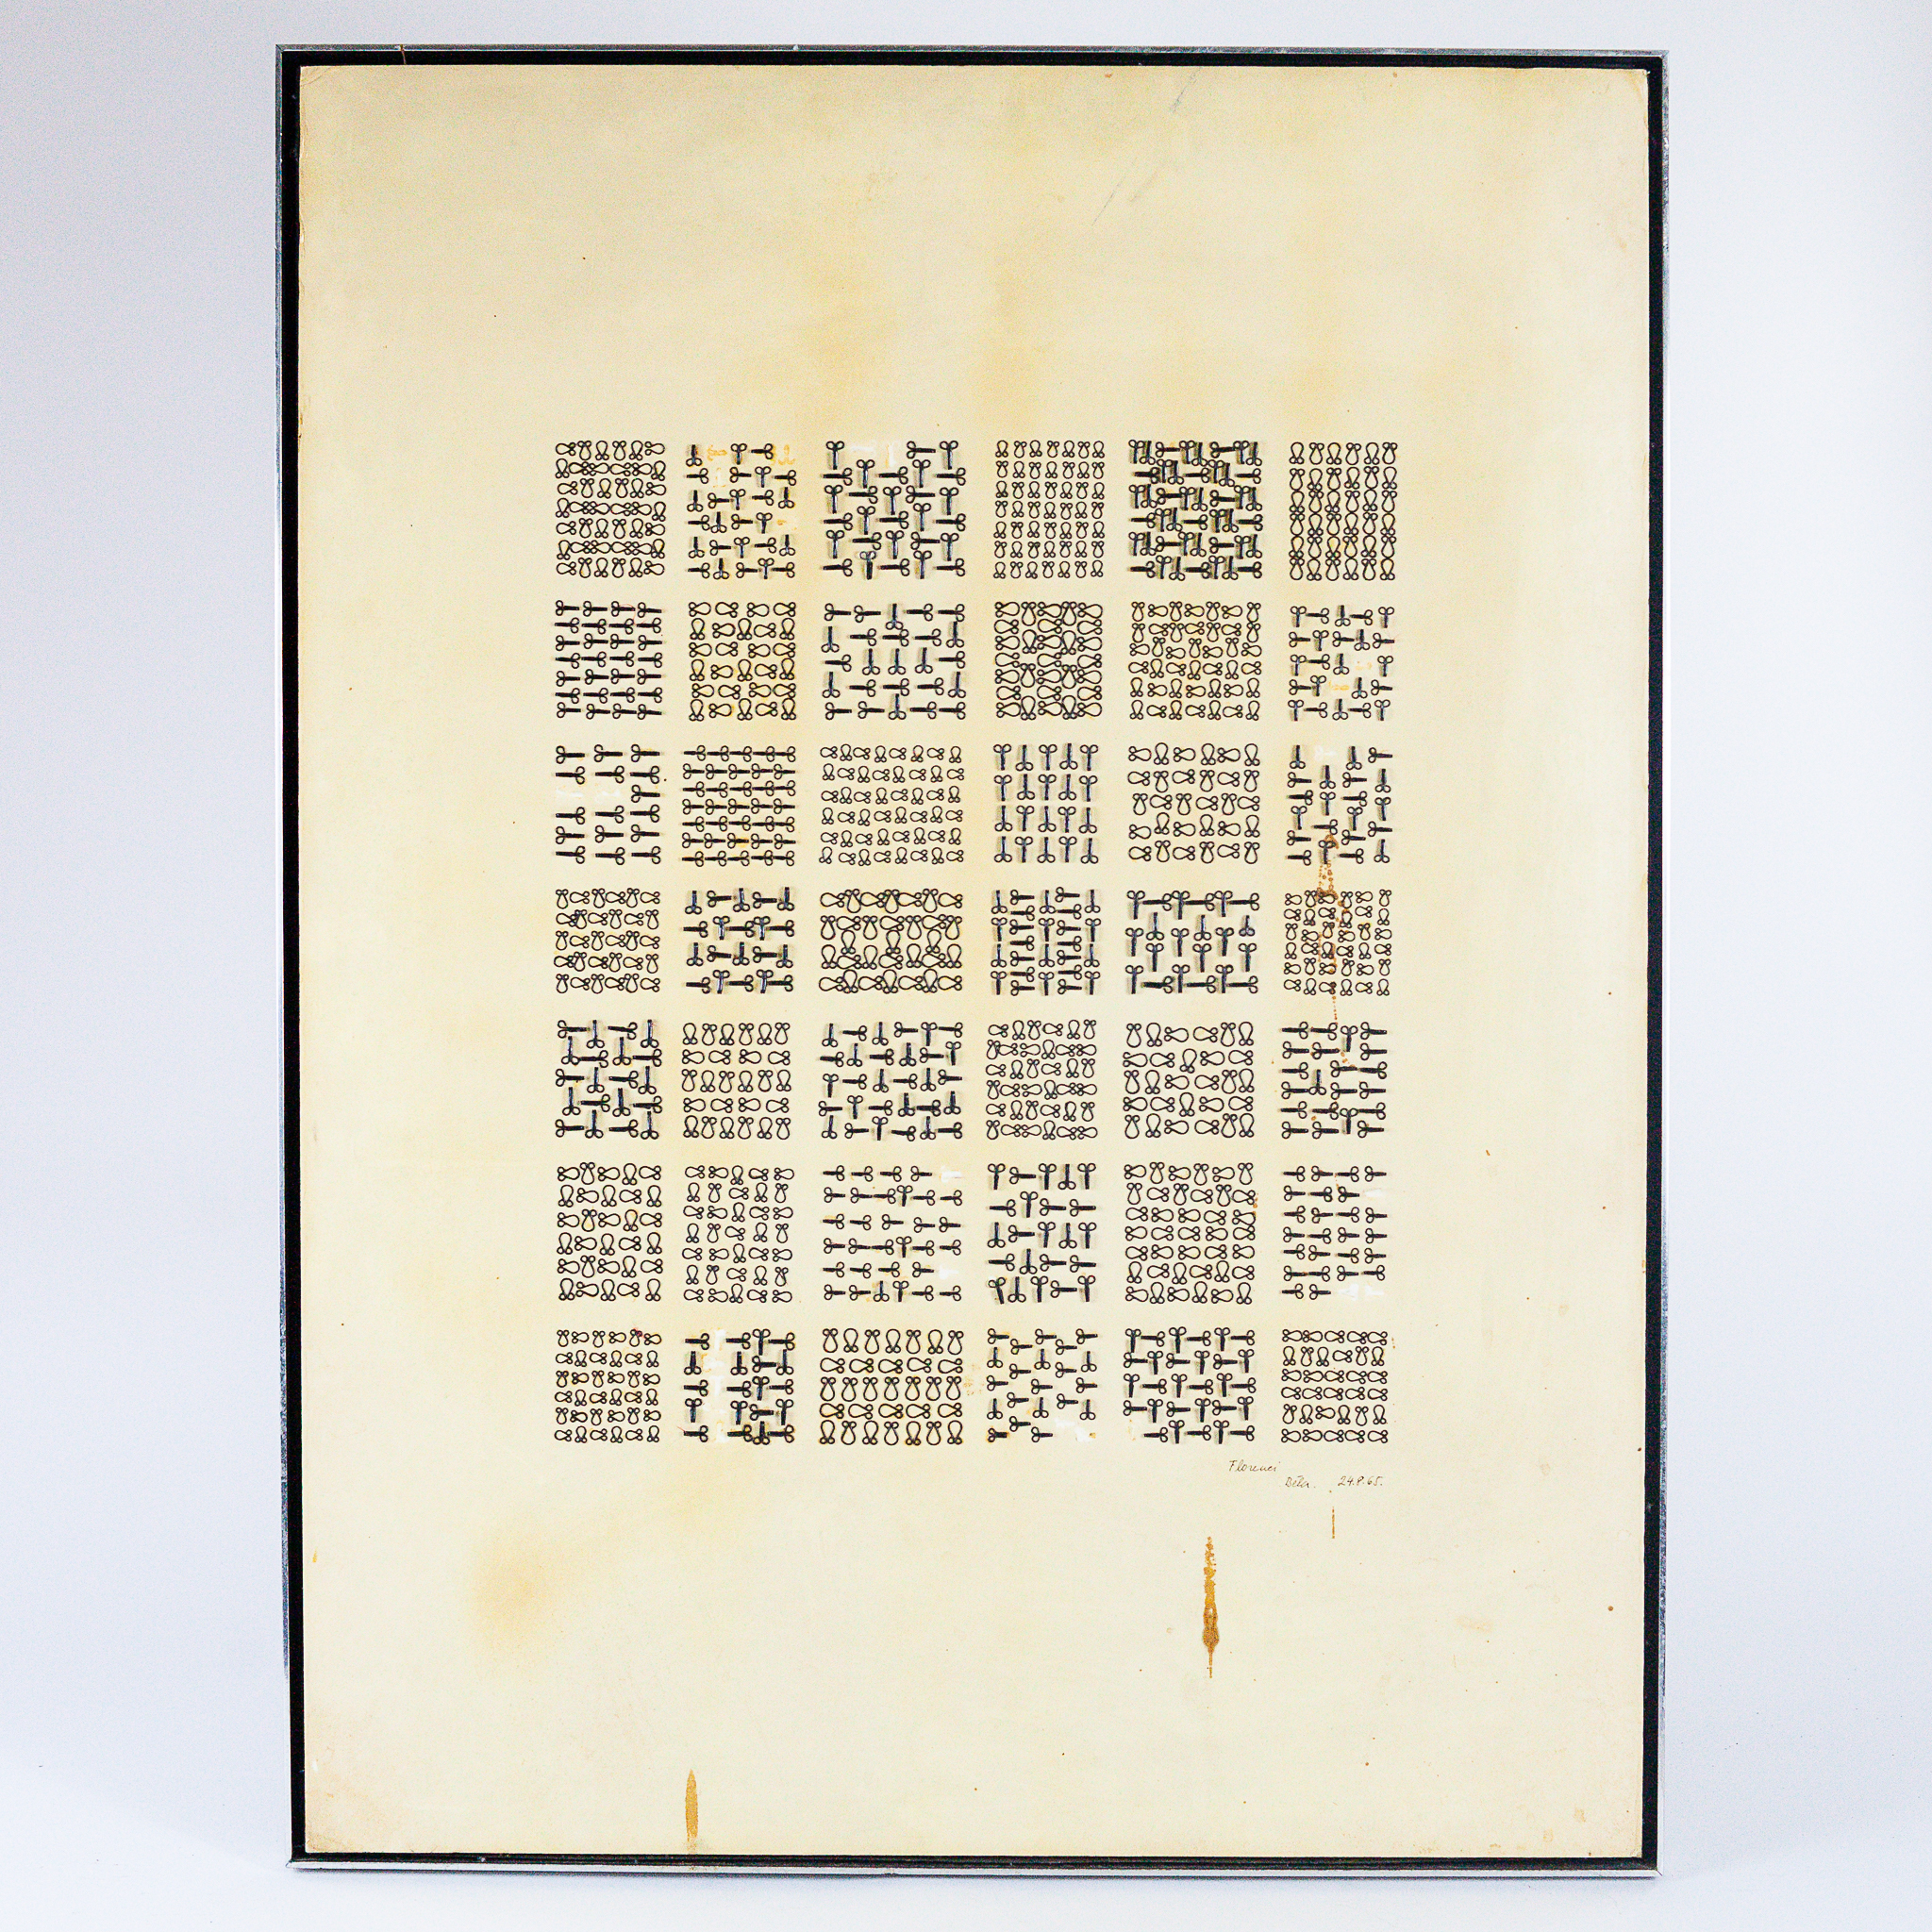 Mixed Media Work by Jiri Kolar (Czech, 1914-2002) | Sold for $10,625